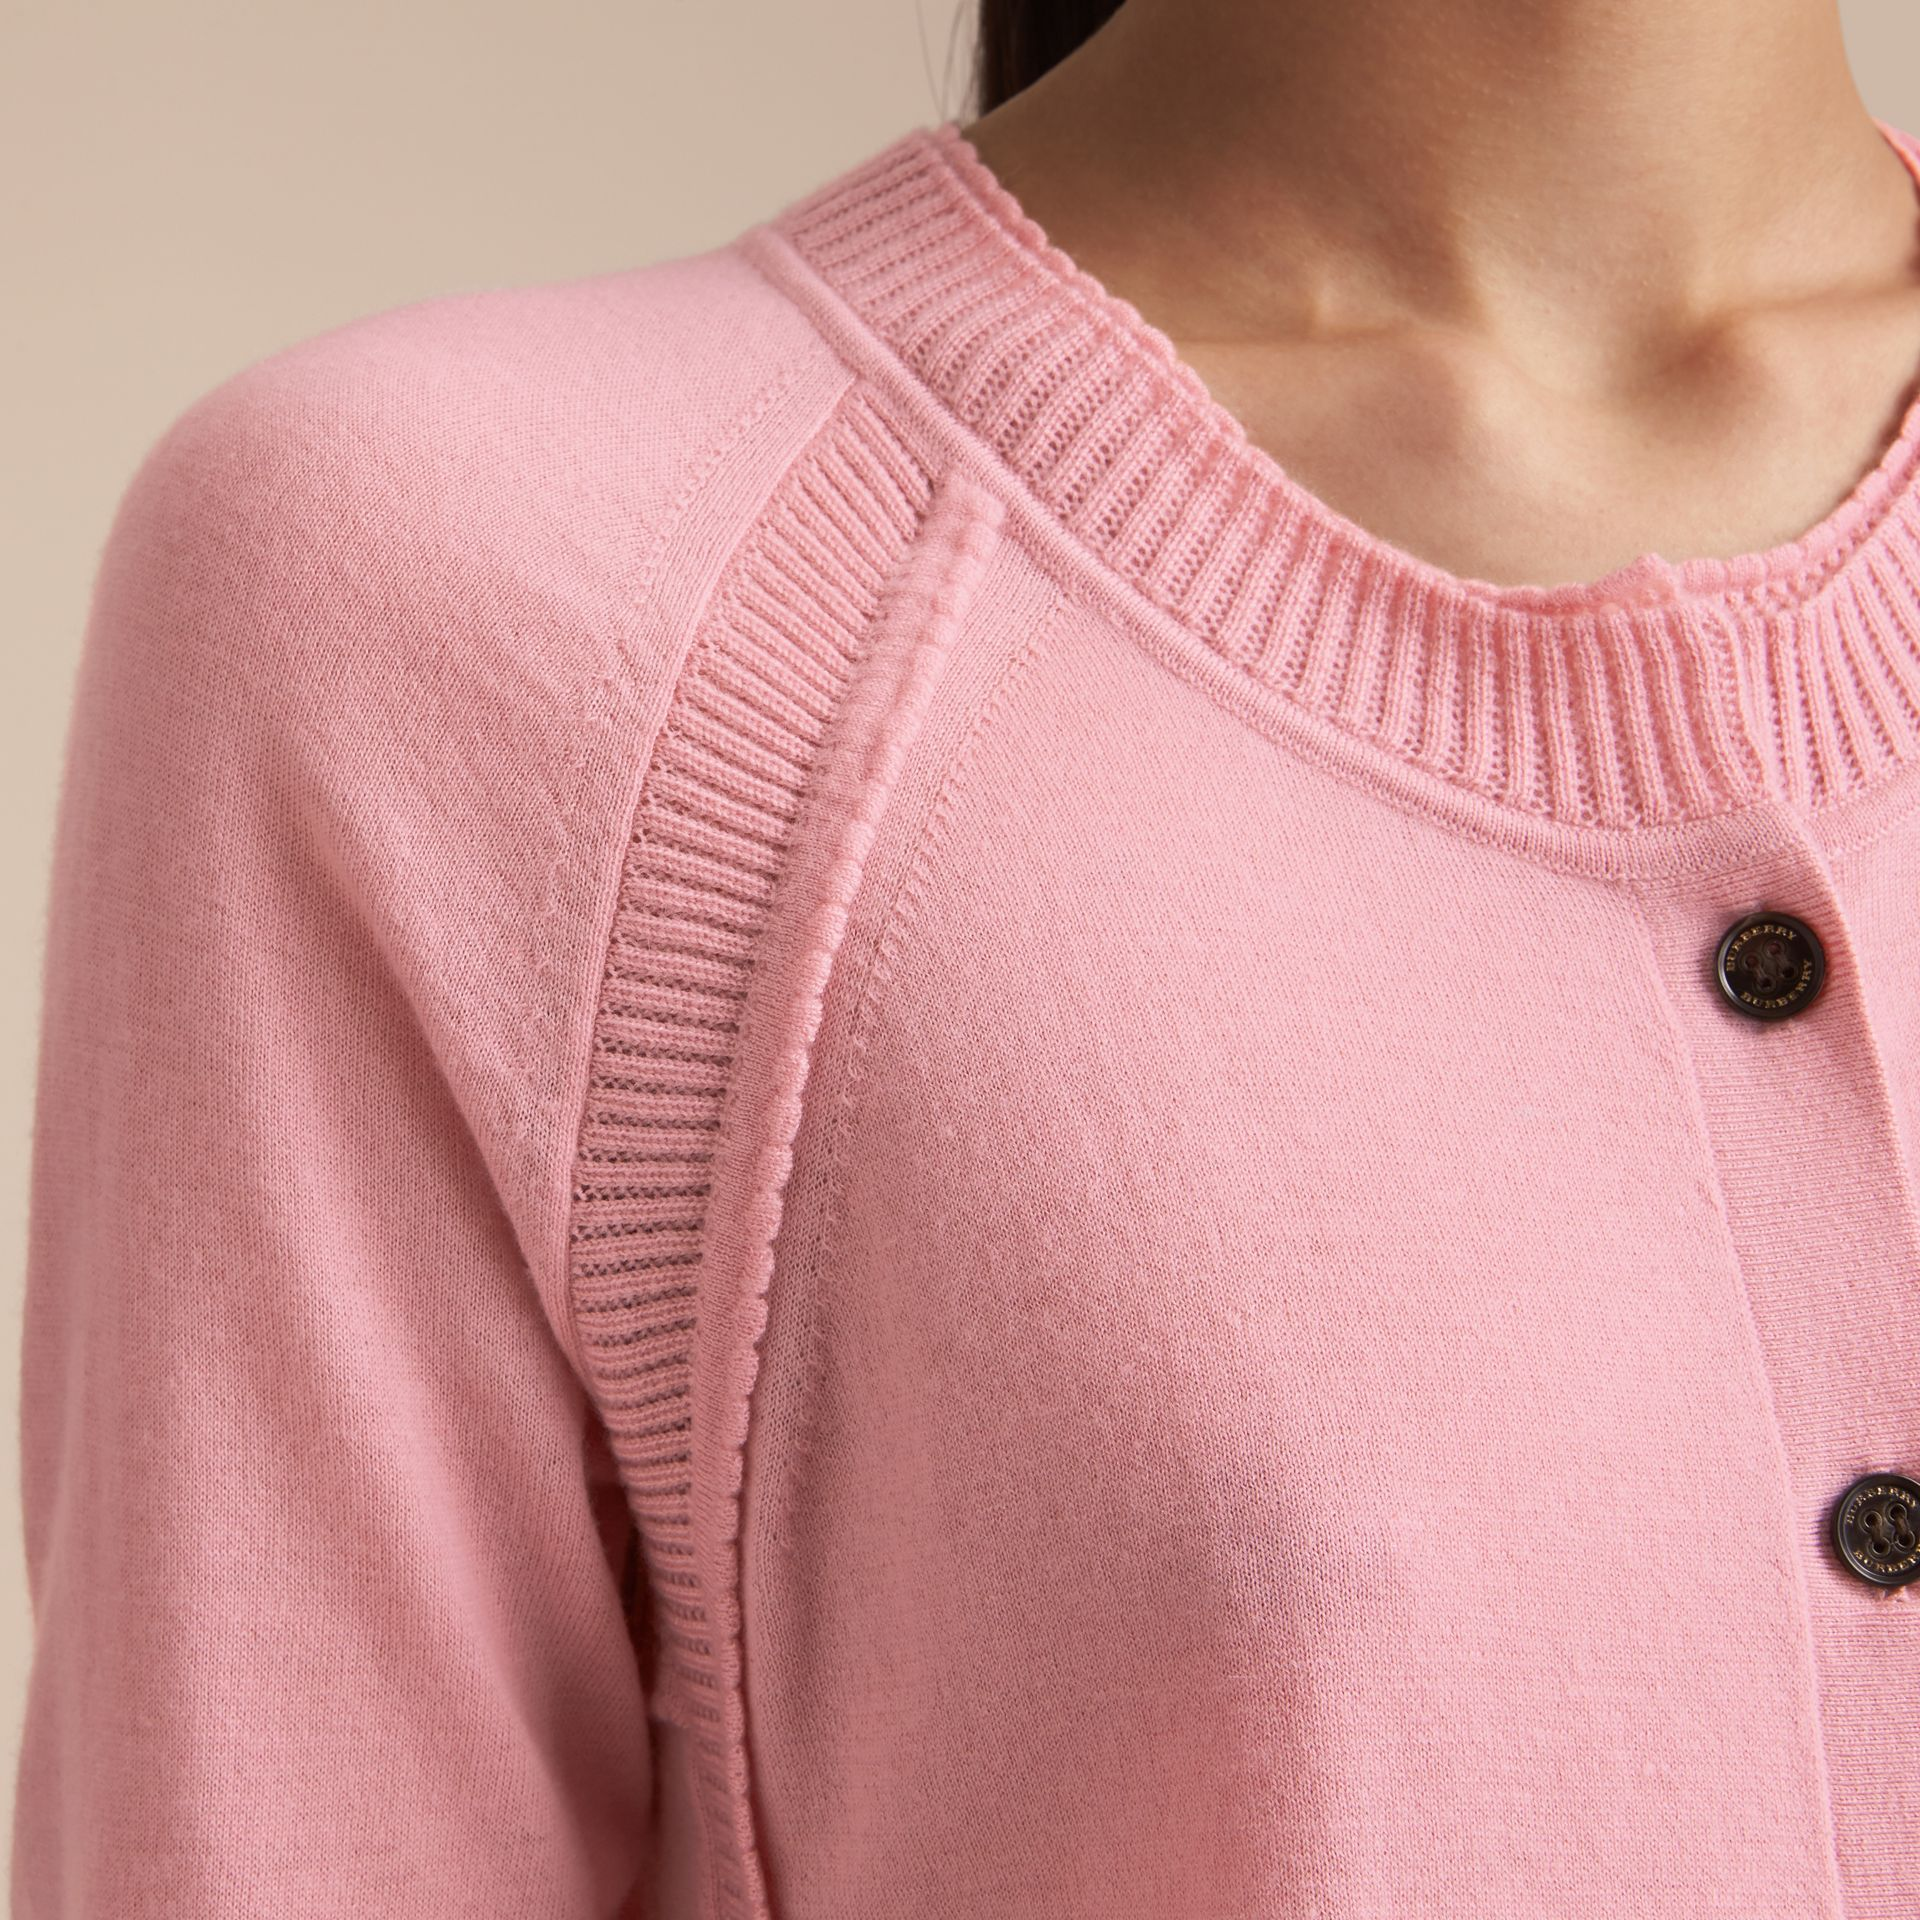 Open-knit Detail Cashmere Cardigan in Apricot Pink - Women | Burberry Australia - gallery image 5